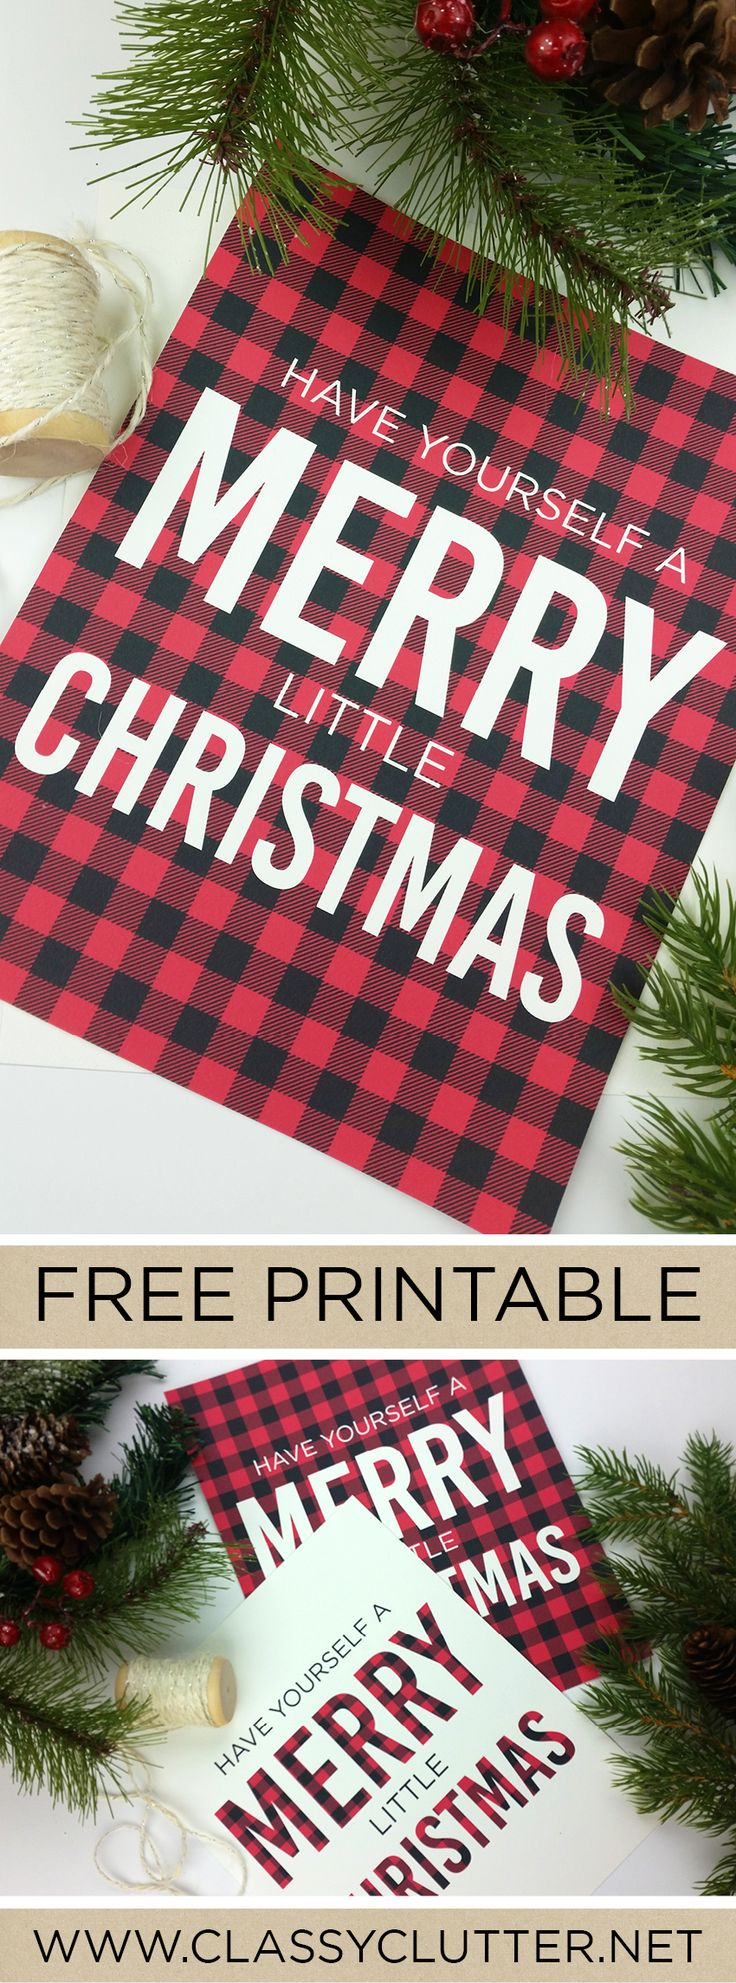 Have Yourself a Merry Little Christmas Free Printable - Love the Buffalo Check Plaid Pattern!  (Click to print yours for free!) - www.classyclutter.net